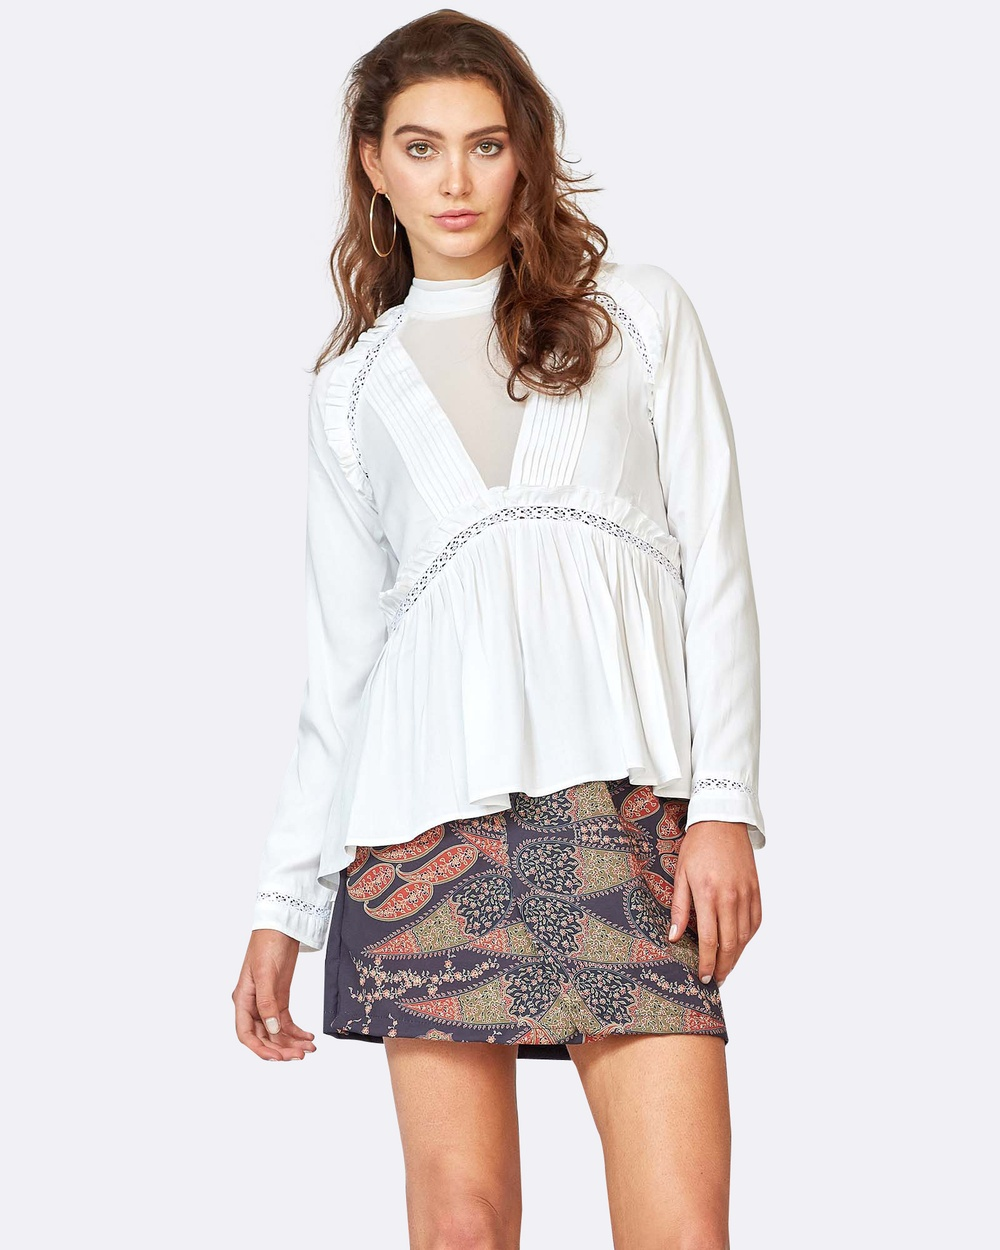 Three of Something Allessio Blouse Tops White Allessio Blouse